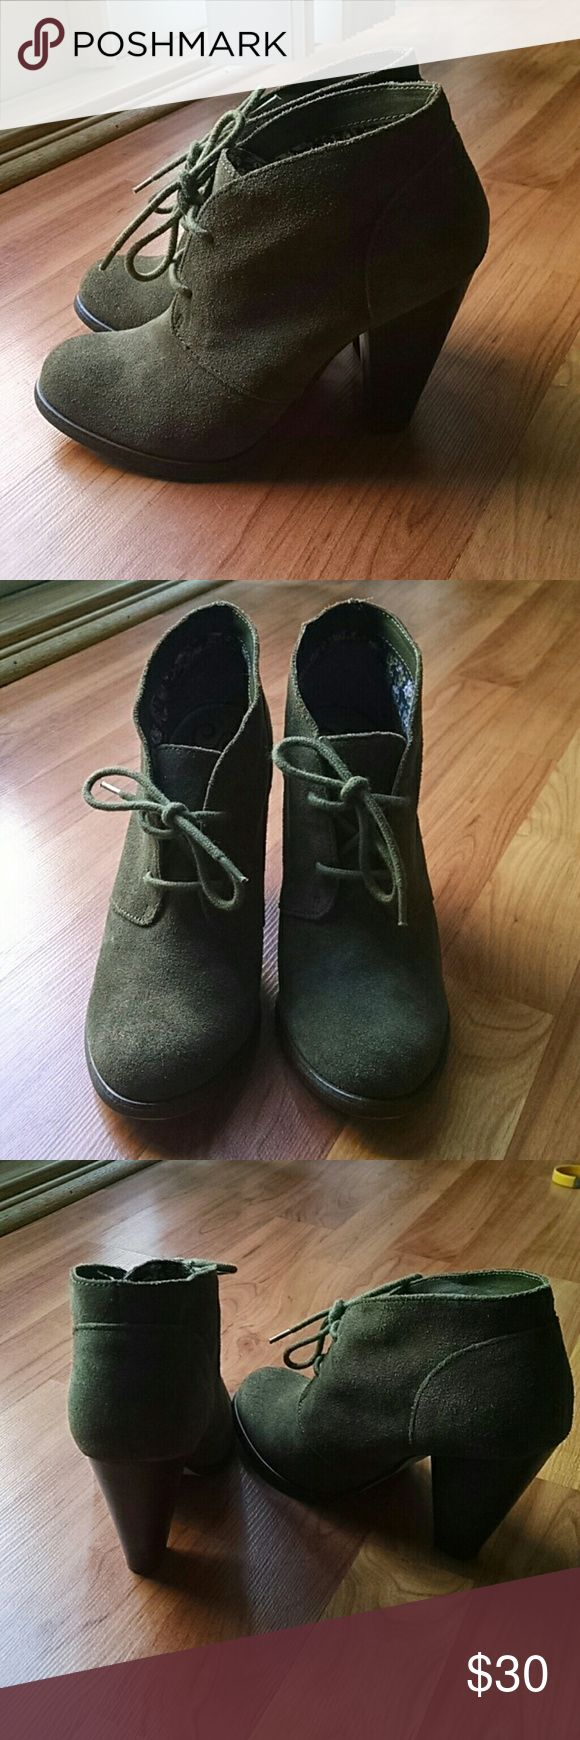 Olive Green Ankle Booties Seychelles olive army green ankle booties. So cute with skinny jeans or leggings. Great condition with the exception of one tiny scuff on the back heel of one bootie, picture 4. Size 6.5 Seychelles Shoes Ankle Boots & Booties